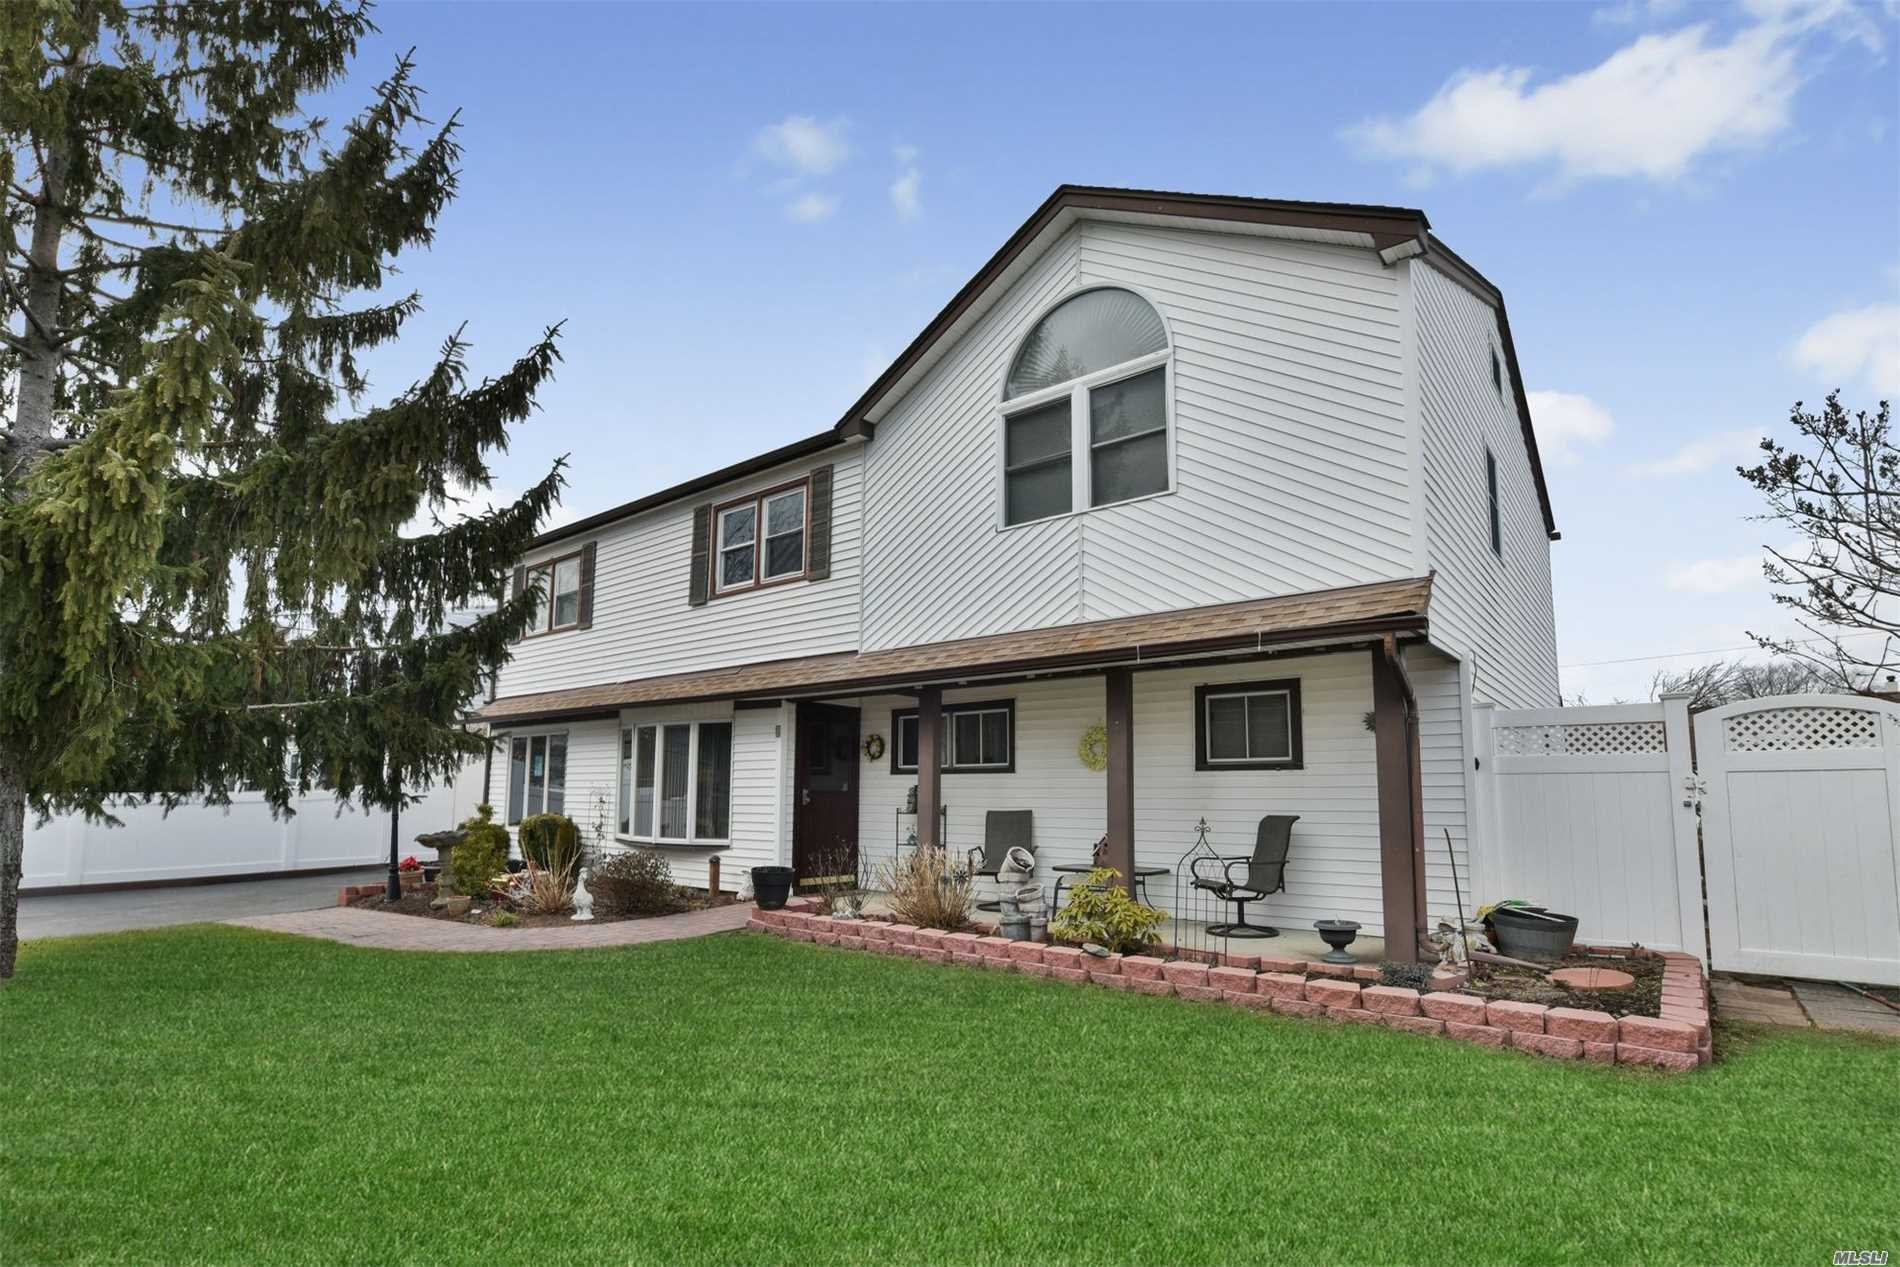 This Large (Approx.2500Sq Ft) Updated Home Located On Prof.Landscaped Property Perfect For A Large Family Or Possible M/D With Proper Permits Features, Updated Eik And Baths, 6 Large Bedrooms, Arch.Roof, Pergo Floors, Crown Moldings, Gas Line Very Close By, 200 Amps, Convenient To All.